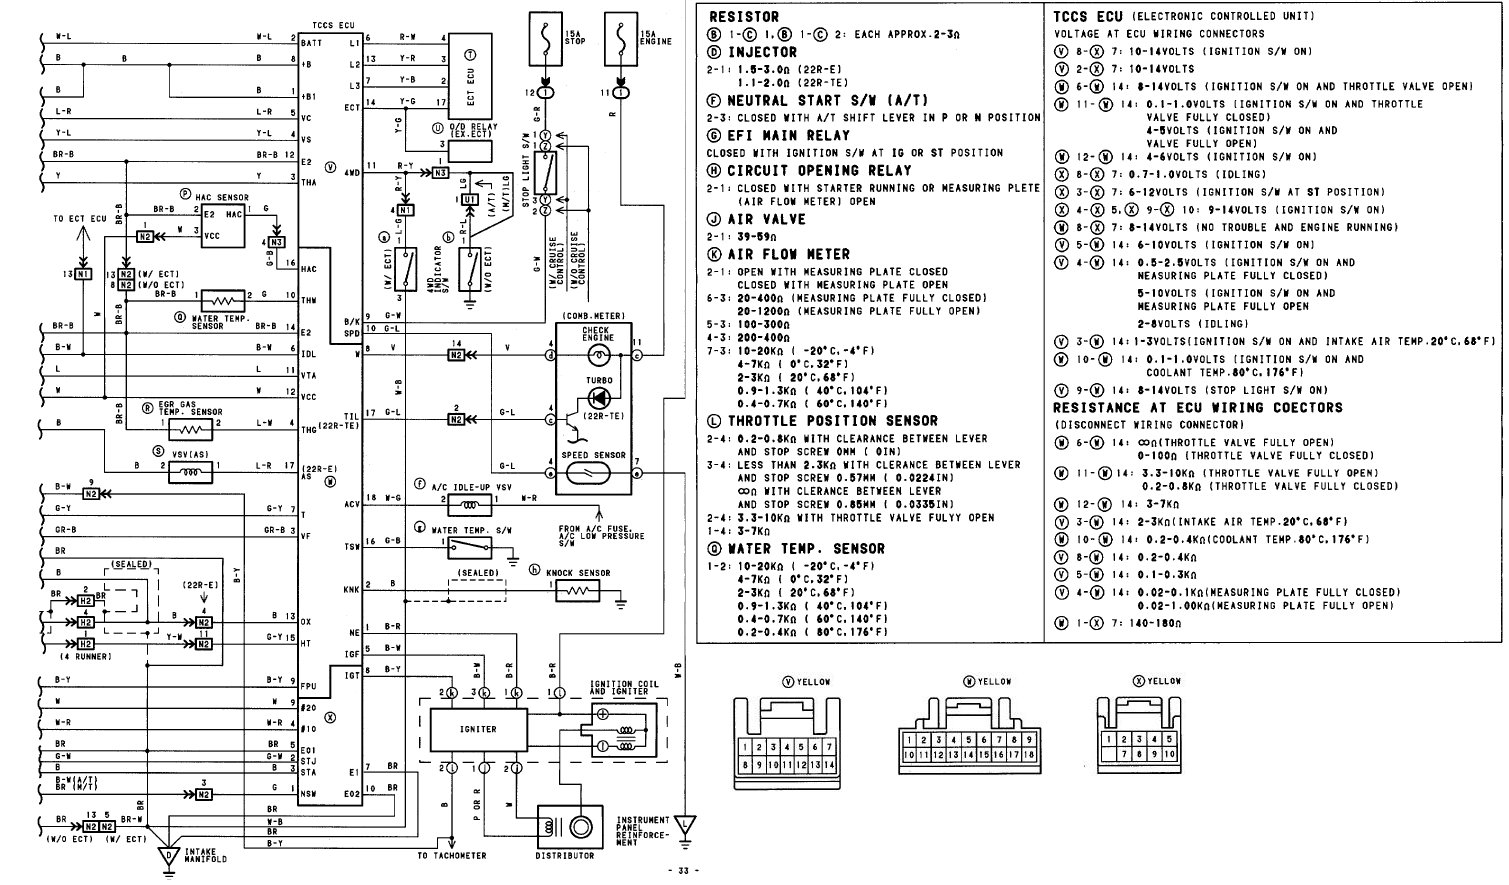 toyota 4runner wiring diagram jHkLHrj 2000 4runner wiring diagram 2005 4runner wiring diagram \u2022 wiring 2004 toyota 4runner wiring diagram at bayanpartner.co